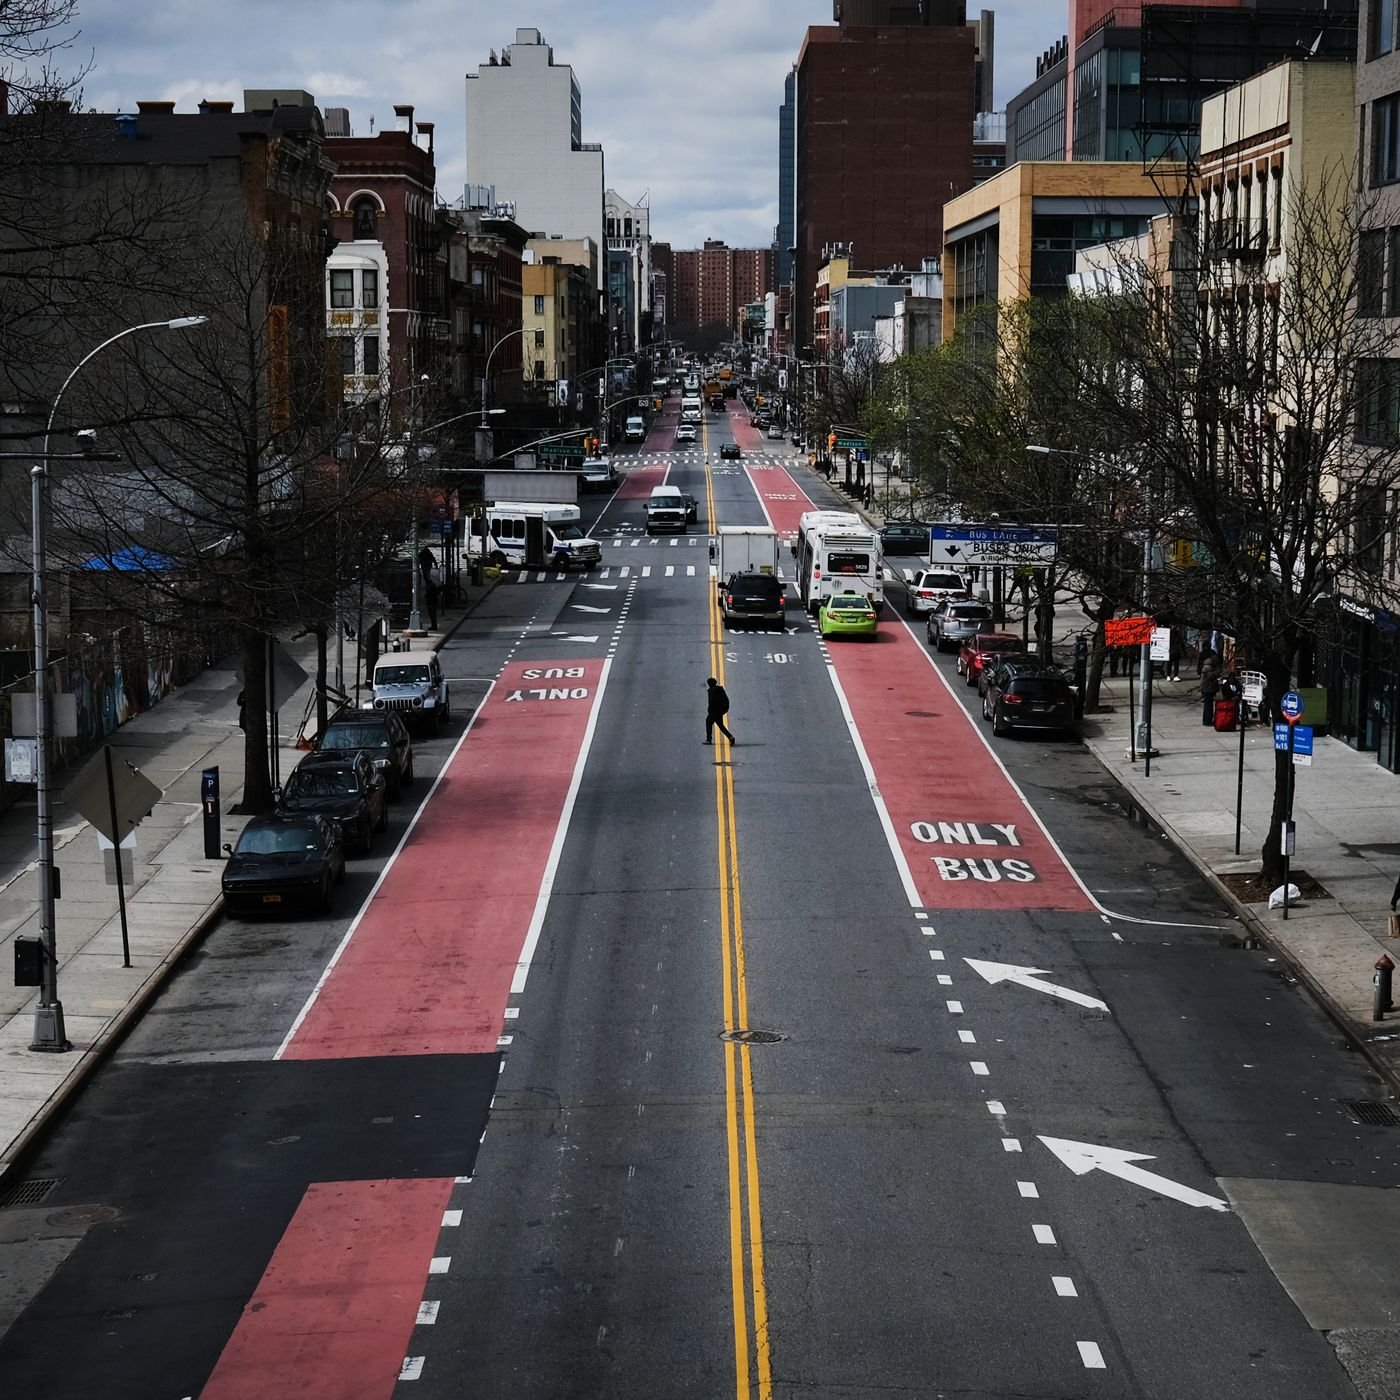 NYC will open up to 100 miles of streets to pedestrians - Curbed NY